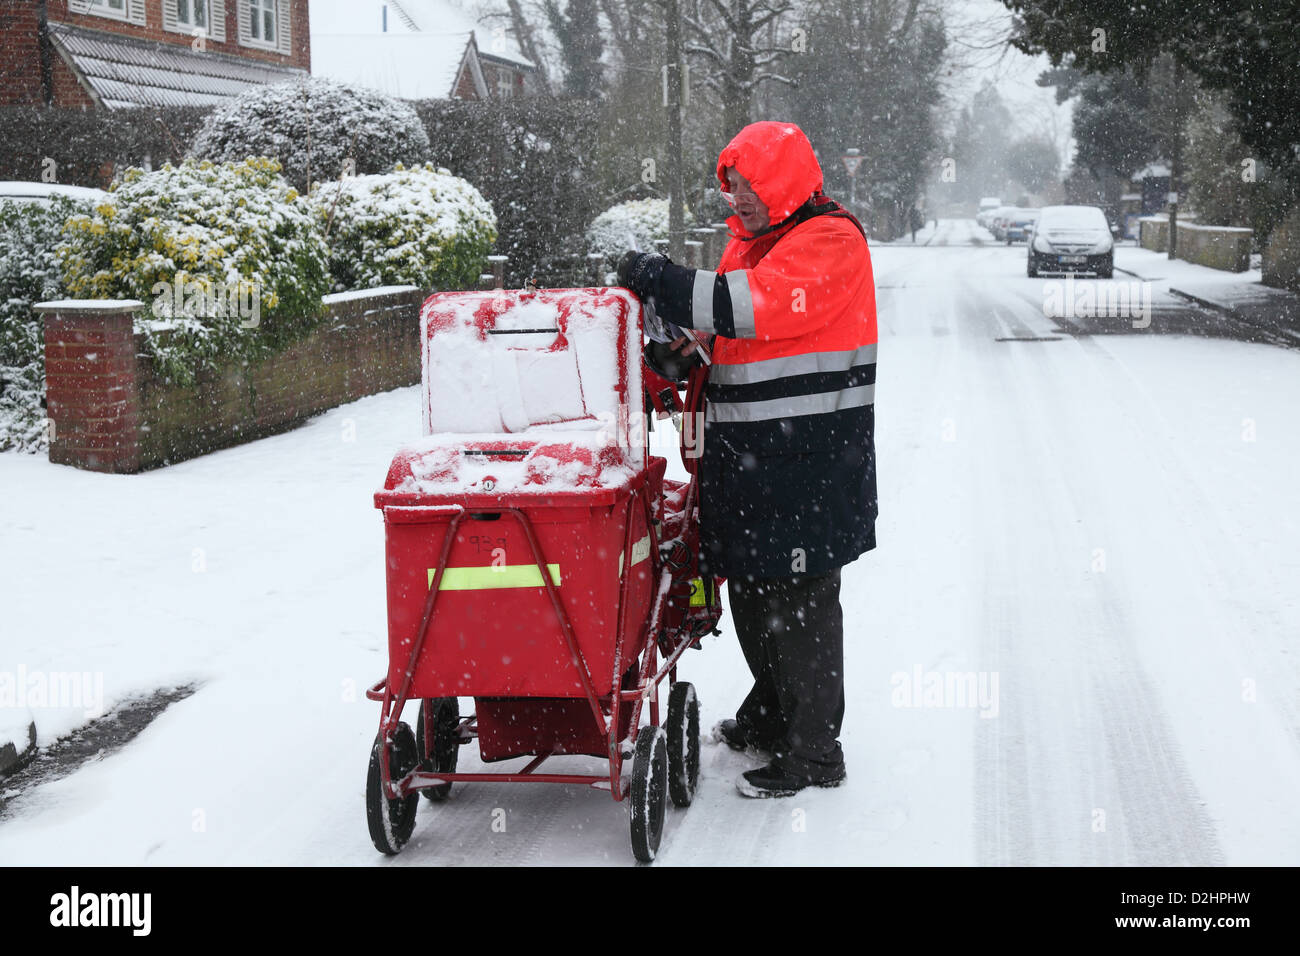 Postman delivers the mail in London in a January snowfall. - Stock Image